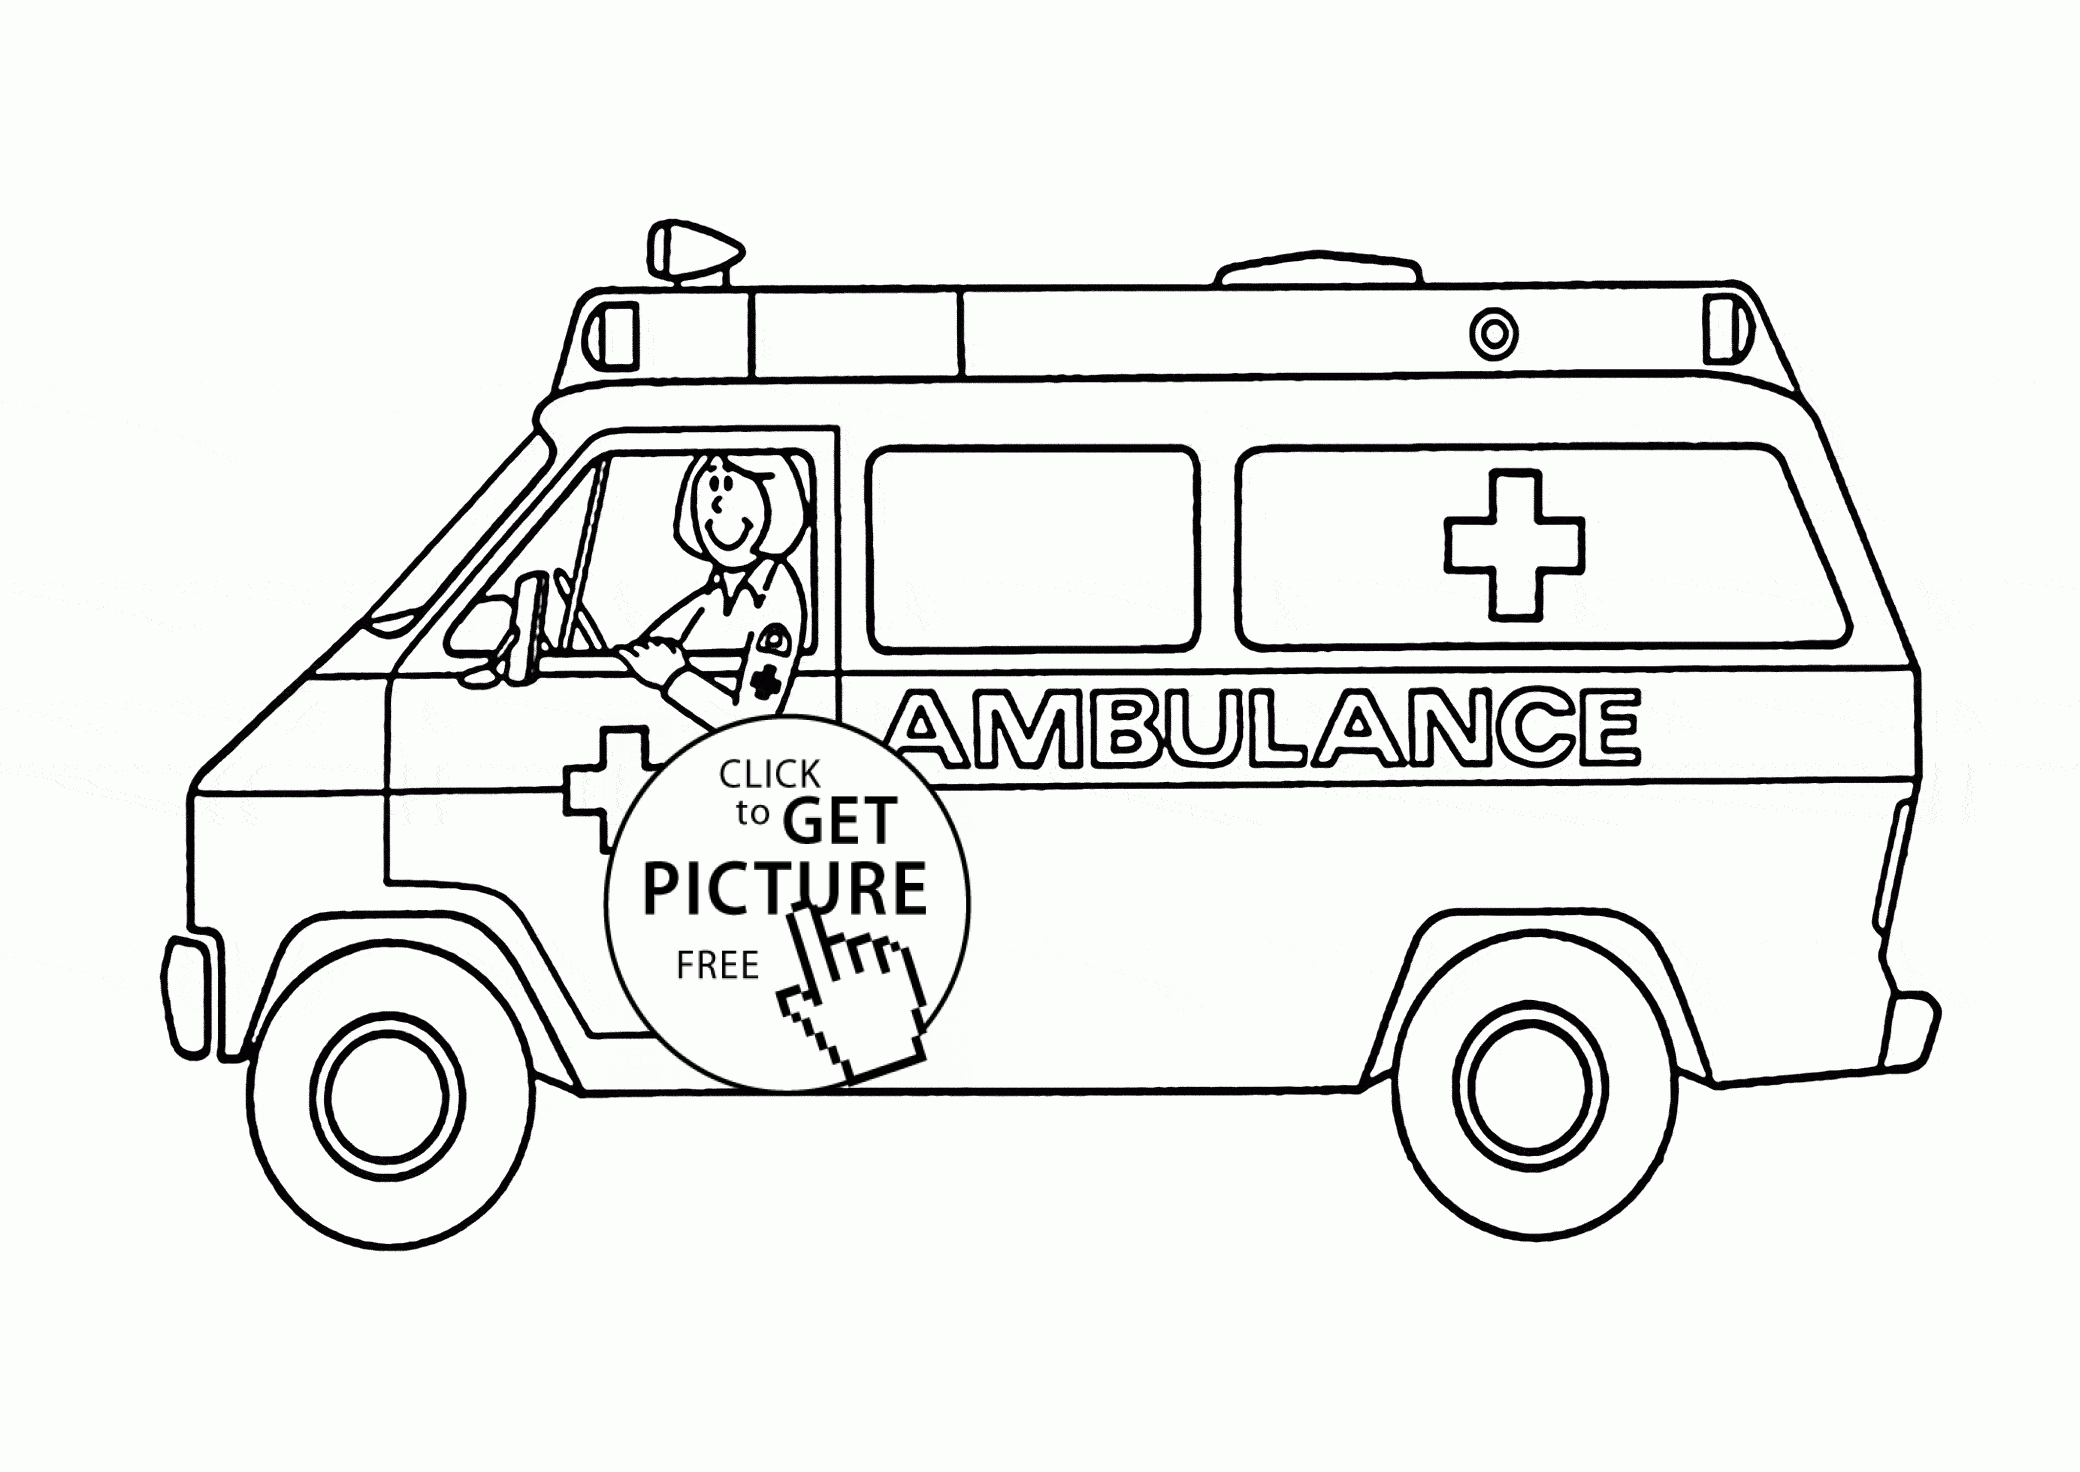 ambulance coloring pages - ambulance coloring page for kids transportation coloring pages printables free 2